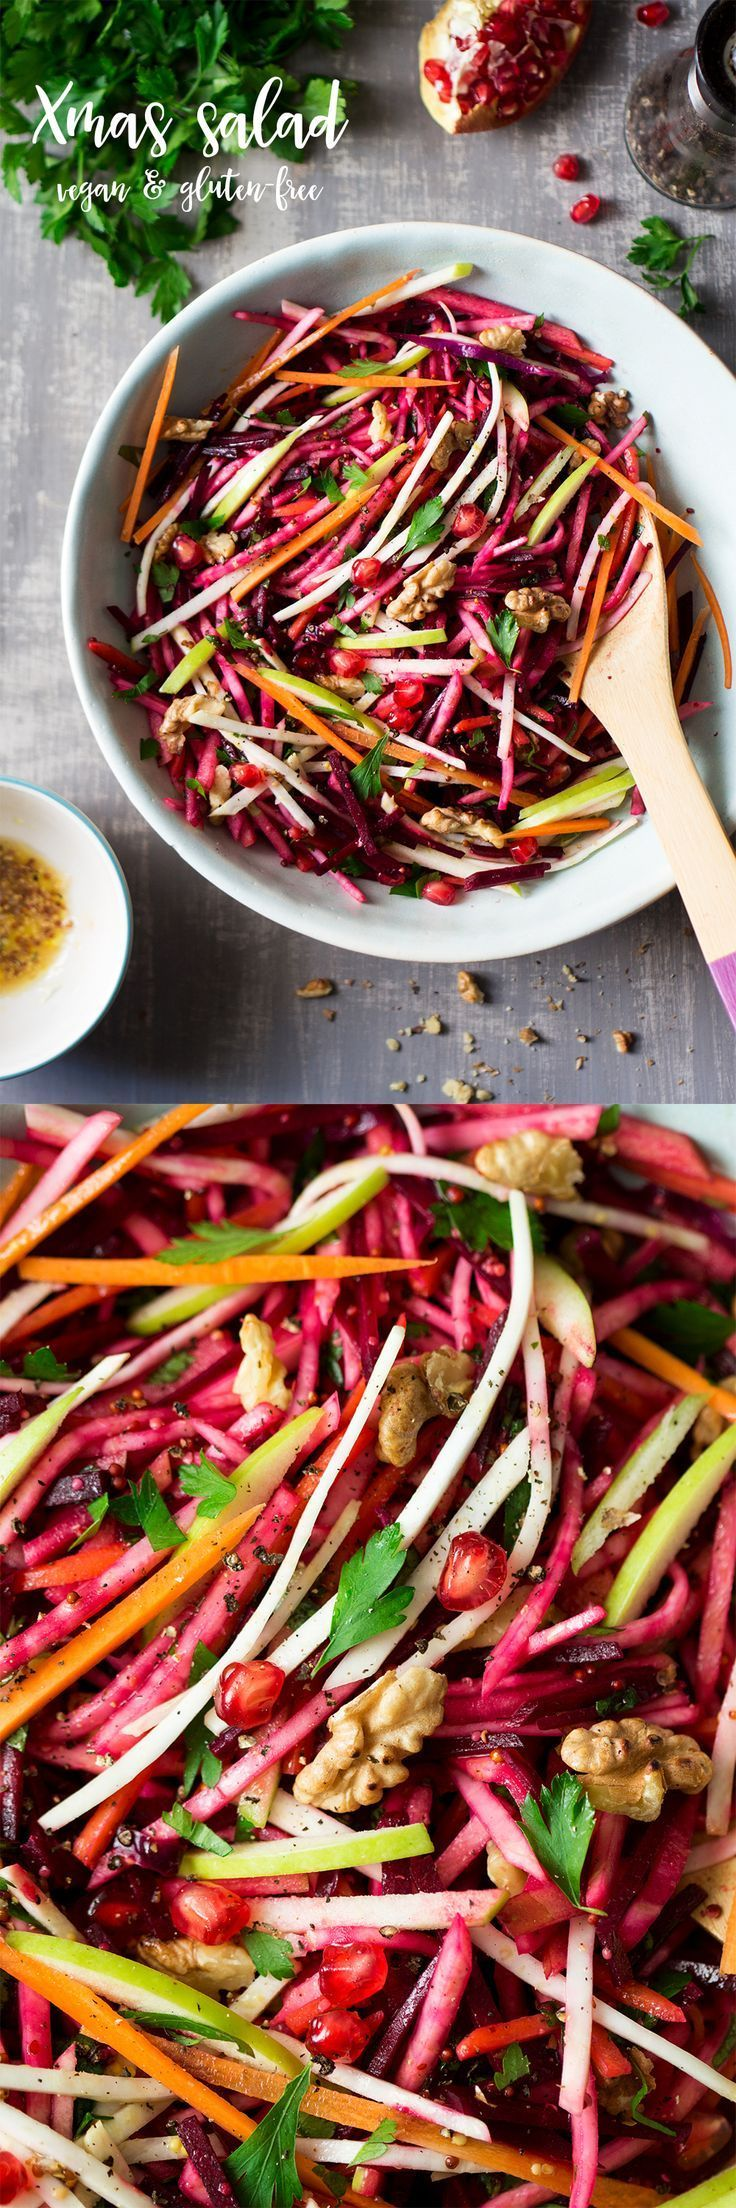 871 best good food veggies images on pinterest side for Different ideas for xmas dinner